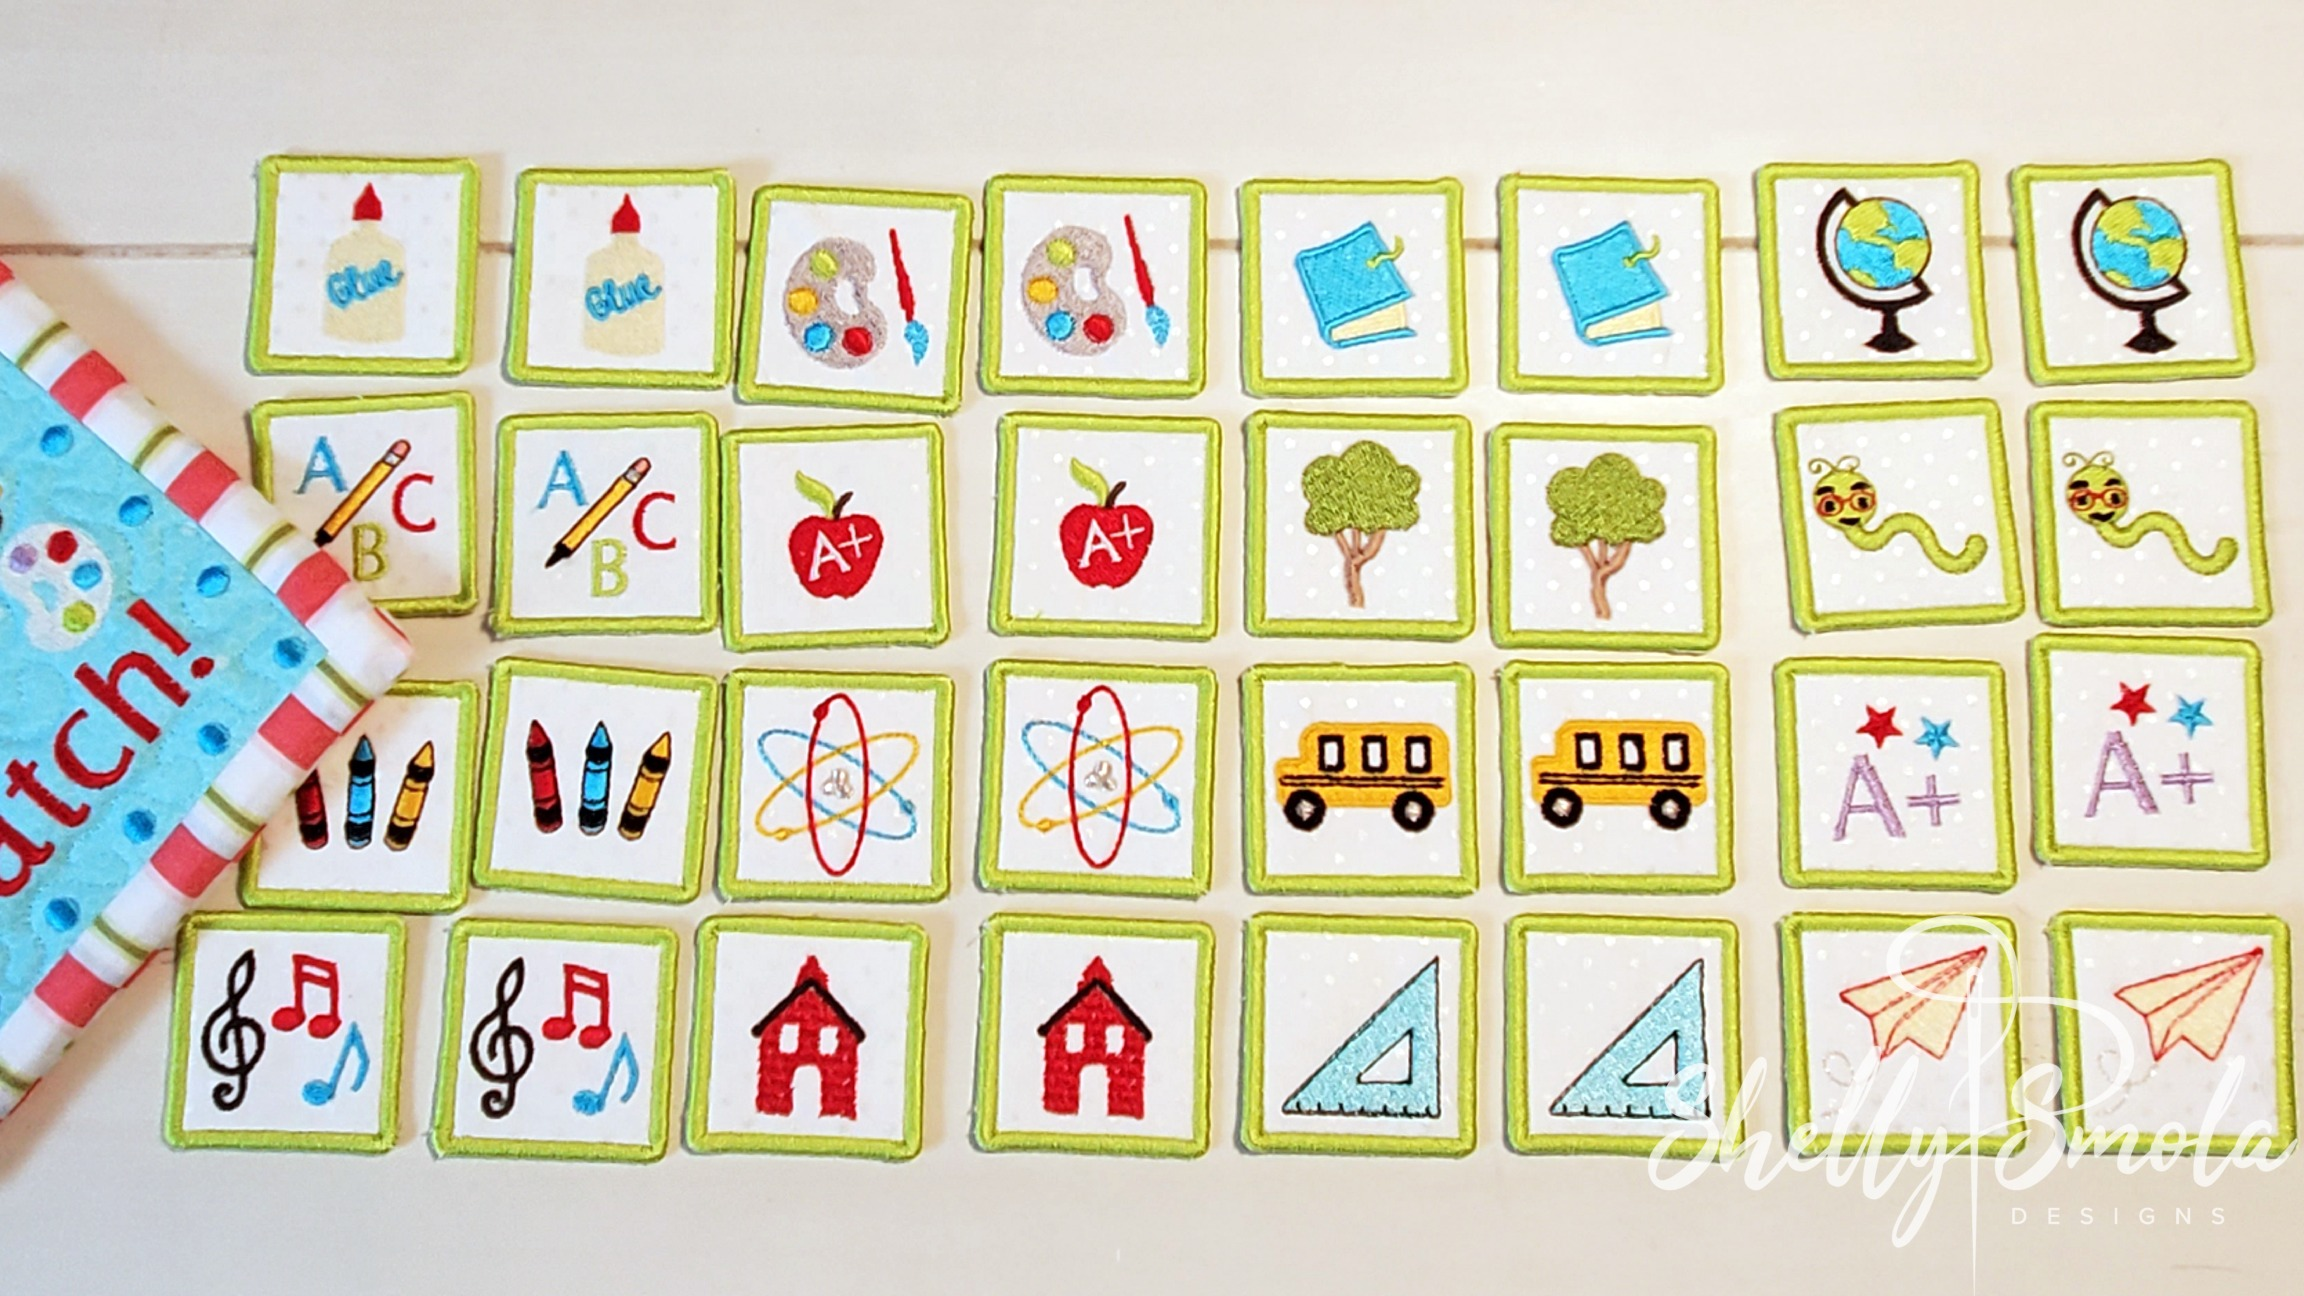 School Memory Game Cards by Shelly Smola